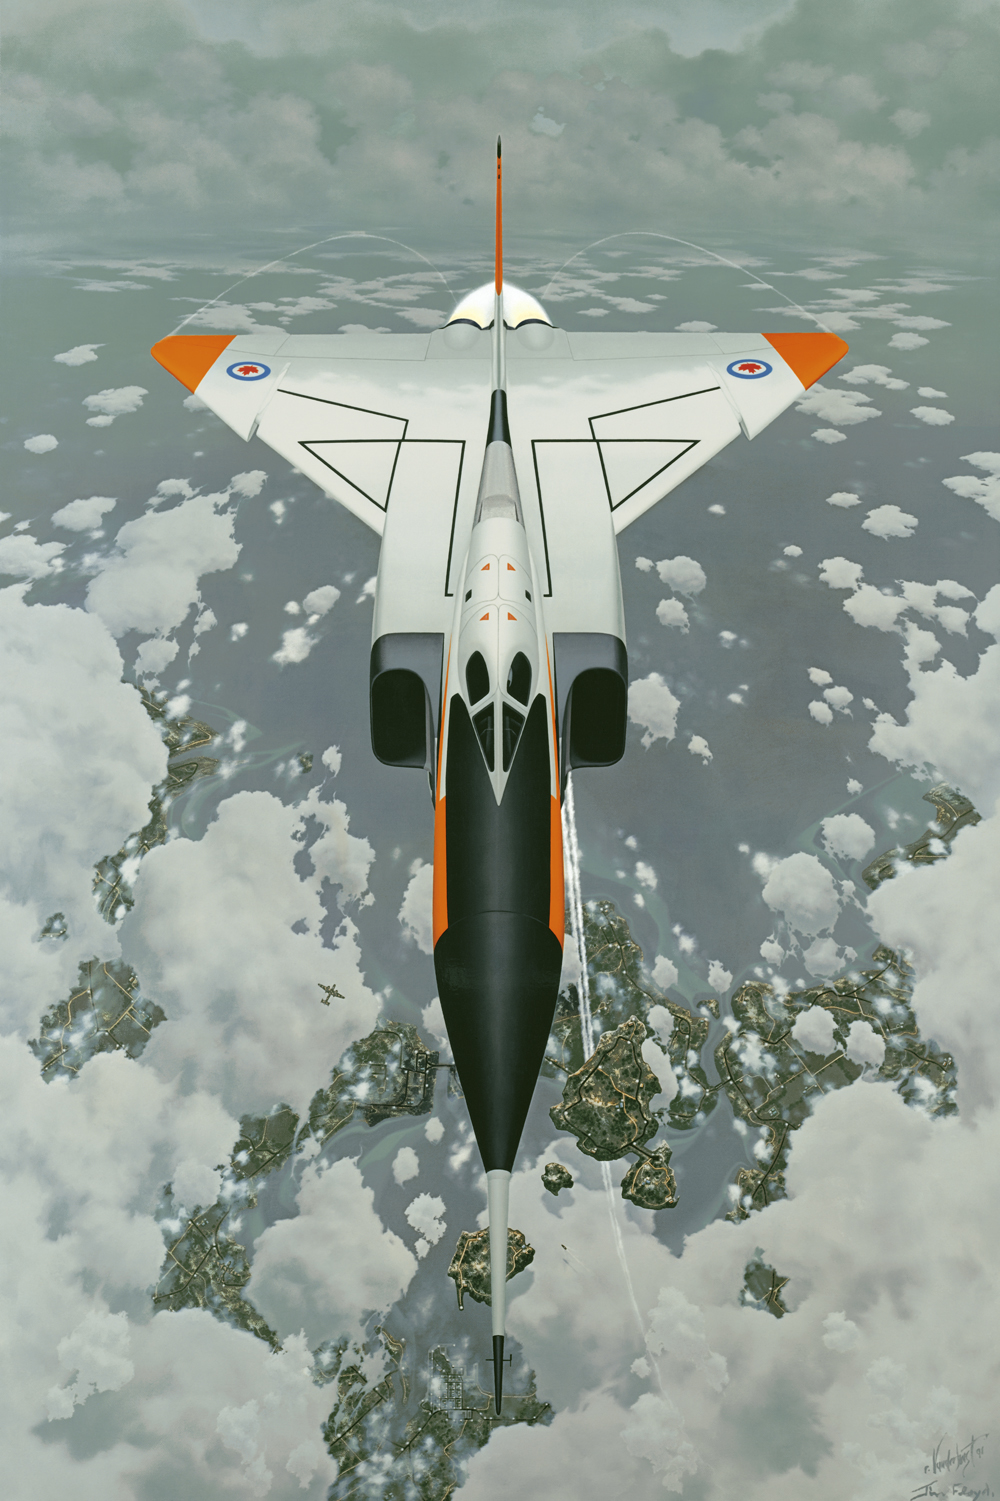 "11.    THE AVRO ARROW    1991, 24"" x 38"", Oil on Canvas. National Aviation Museum, Ottawa, Canada - Permanent art collection.    The Arrow is performing an inverted loop and the unusual perspective was designed to give the viewer a heightened sense of the maneuver. Directly below and to the right of the nose cone you will find several floating segments of land and a small boat floating above the clouds (the contrail passes beneath the largest piece of land). This was done to depict a sense of disorientation - the same experience a pilot may have executing such a maneuver."